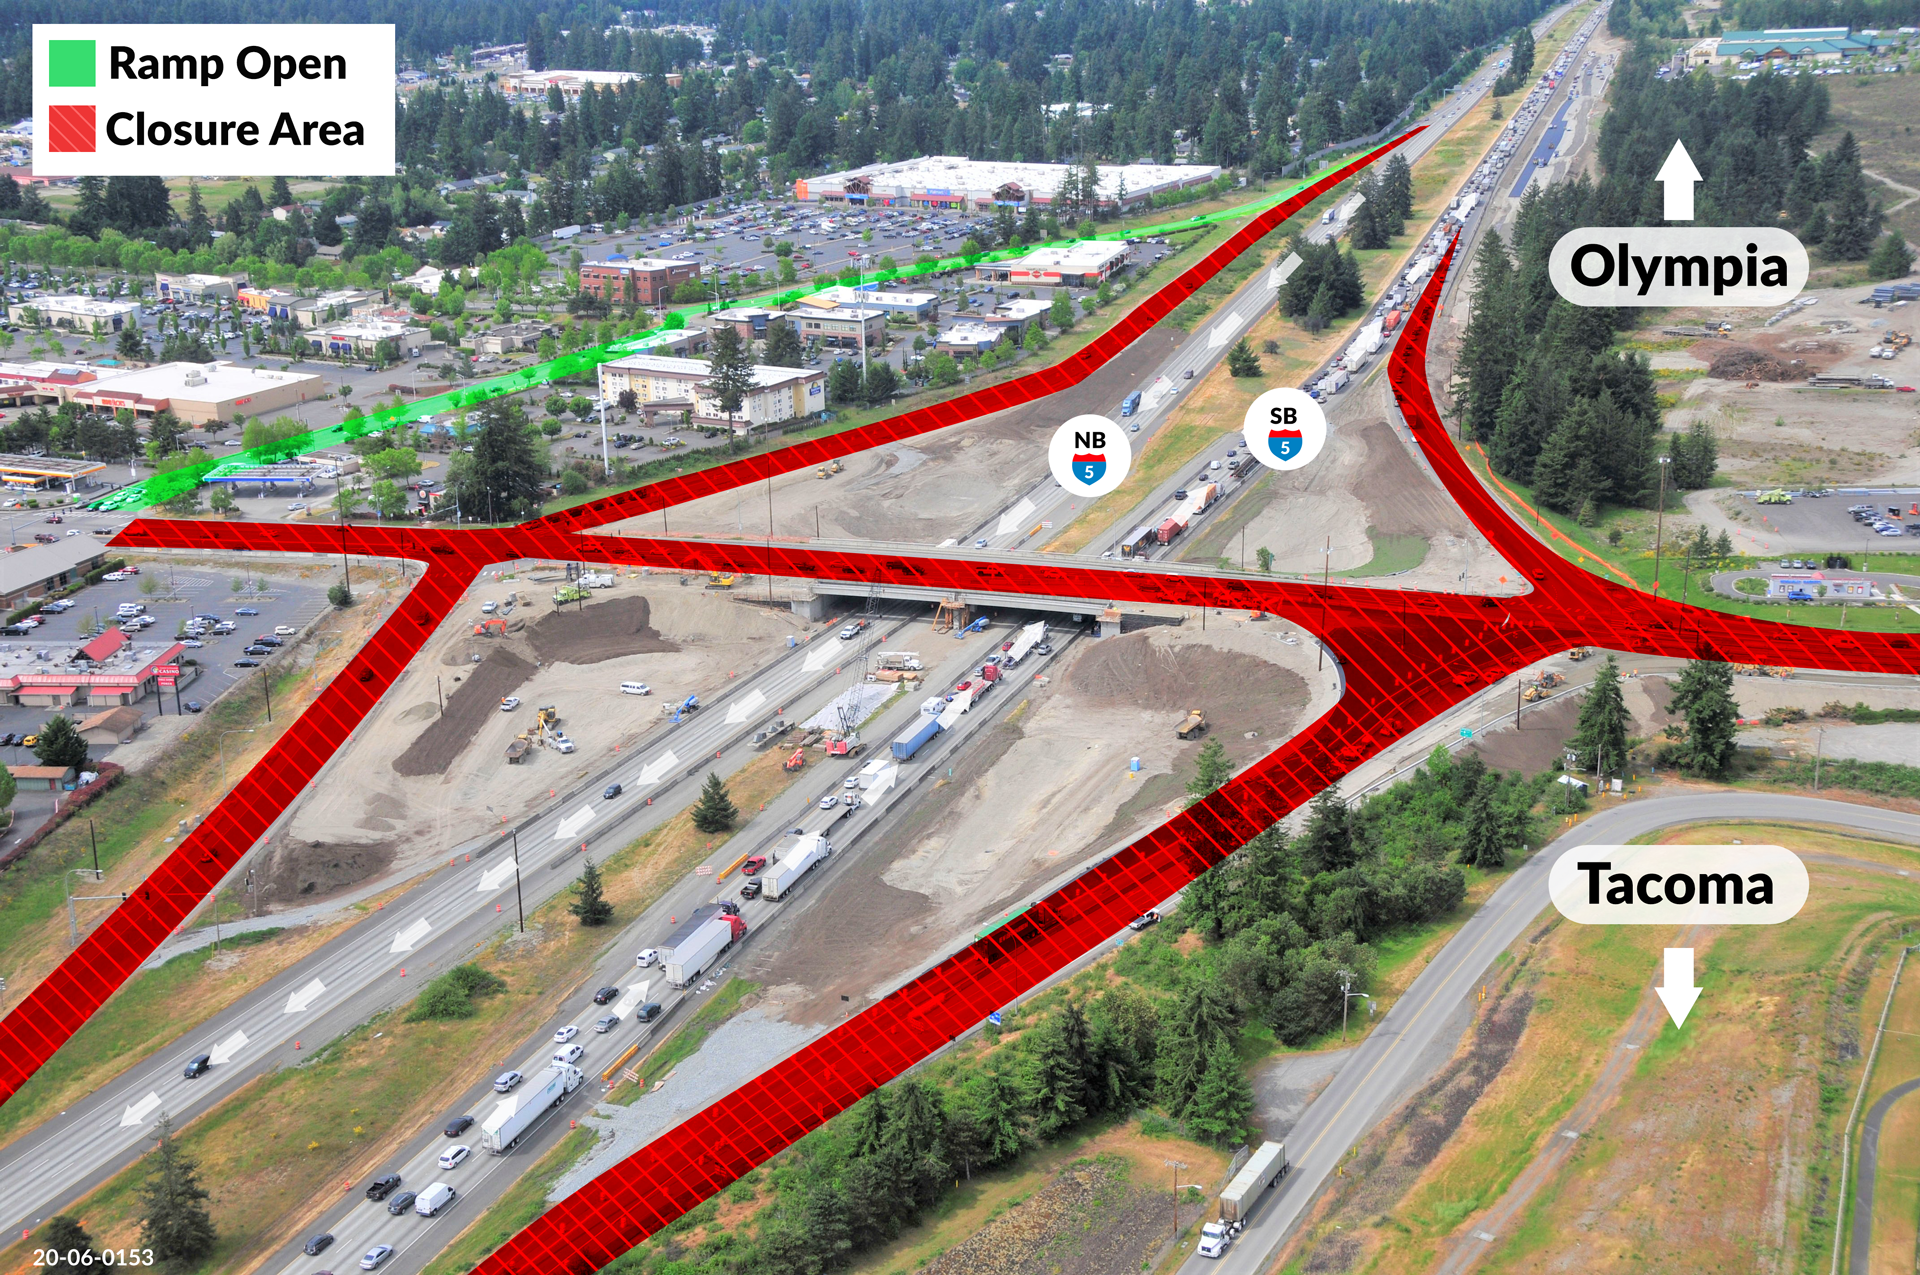 Overhead view of Marvin Road interchange with Tacoma to the left and Olympia to the right. Red lines show the overpass is closed for the weekend.